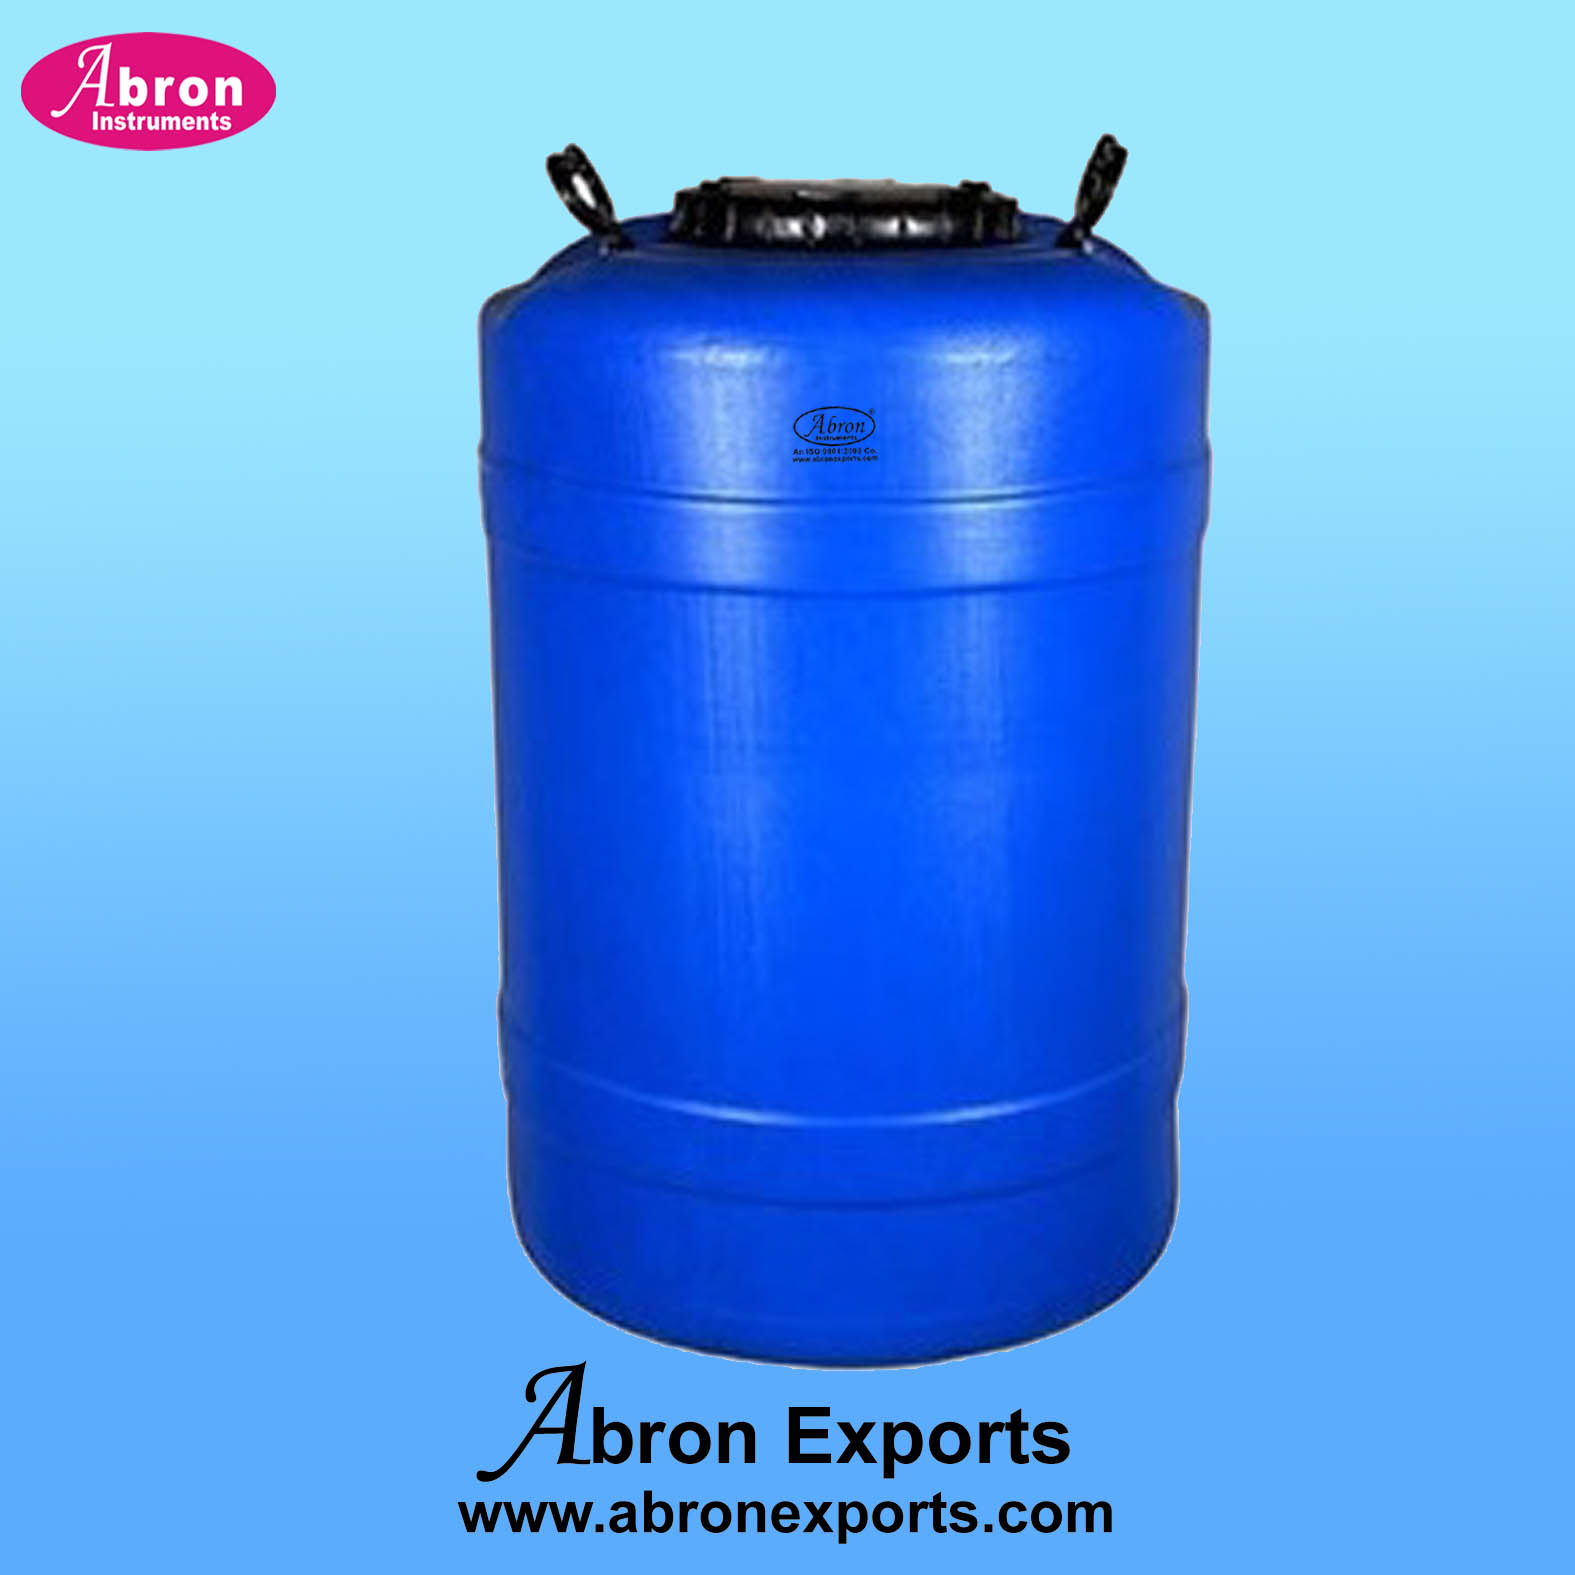 Containers Plastic 100 liters Wide Mouth Screw Cap Blue Heavy Abron AT-9515-100N